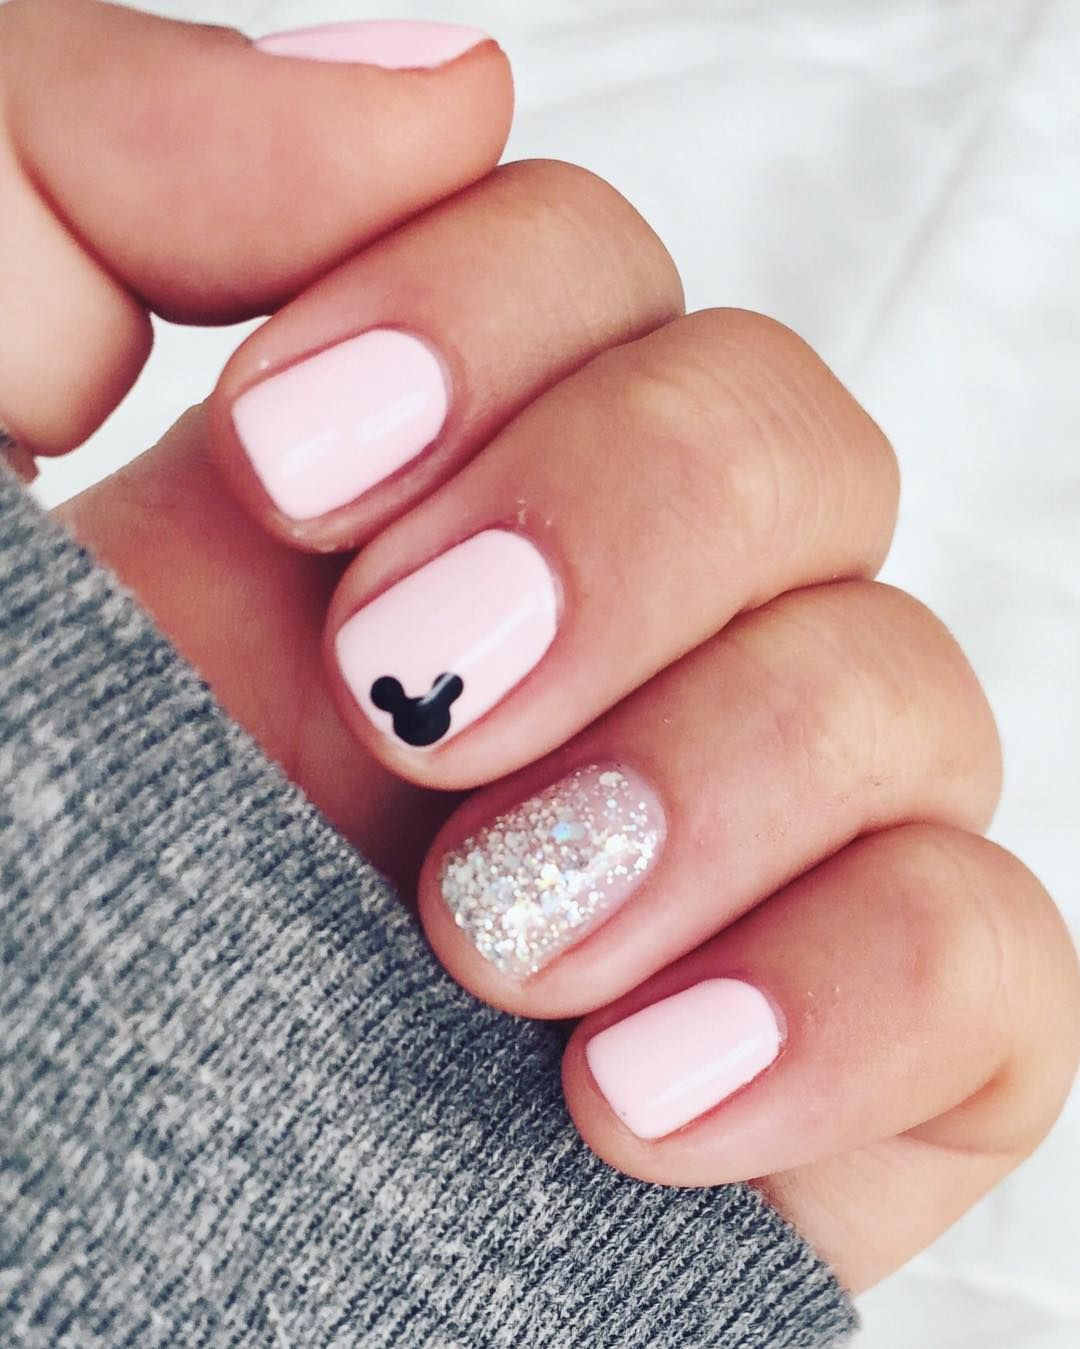 Disney Nail Art Ideas | POPSUGAR Beauty - These Disney Nail Art Ideas Will Inspire Your Next Magical Manicure